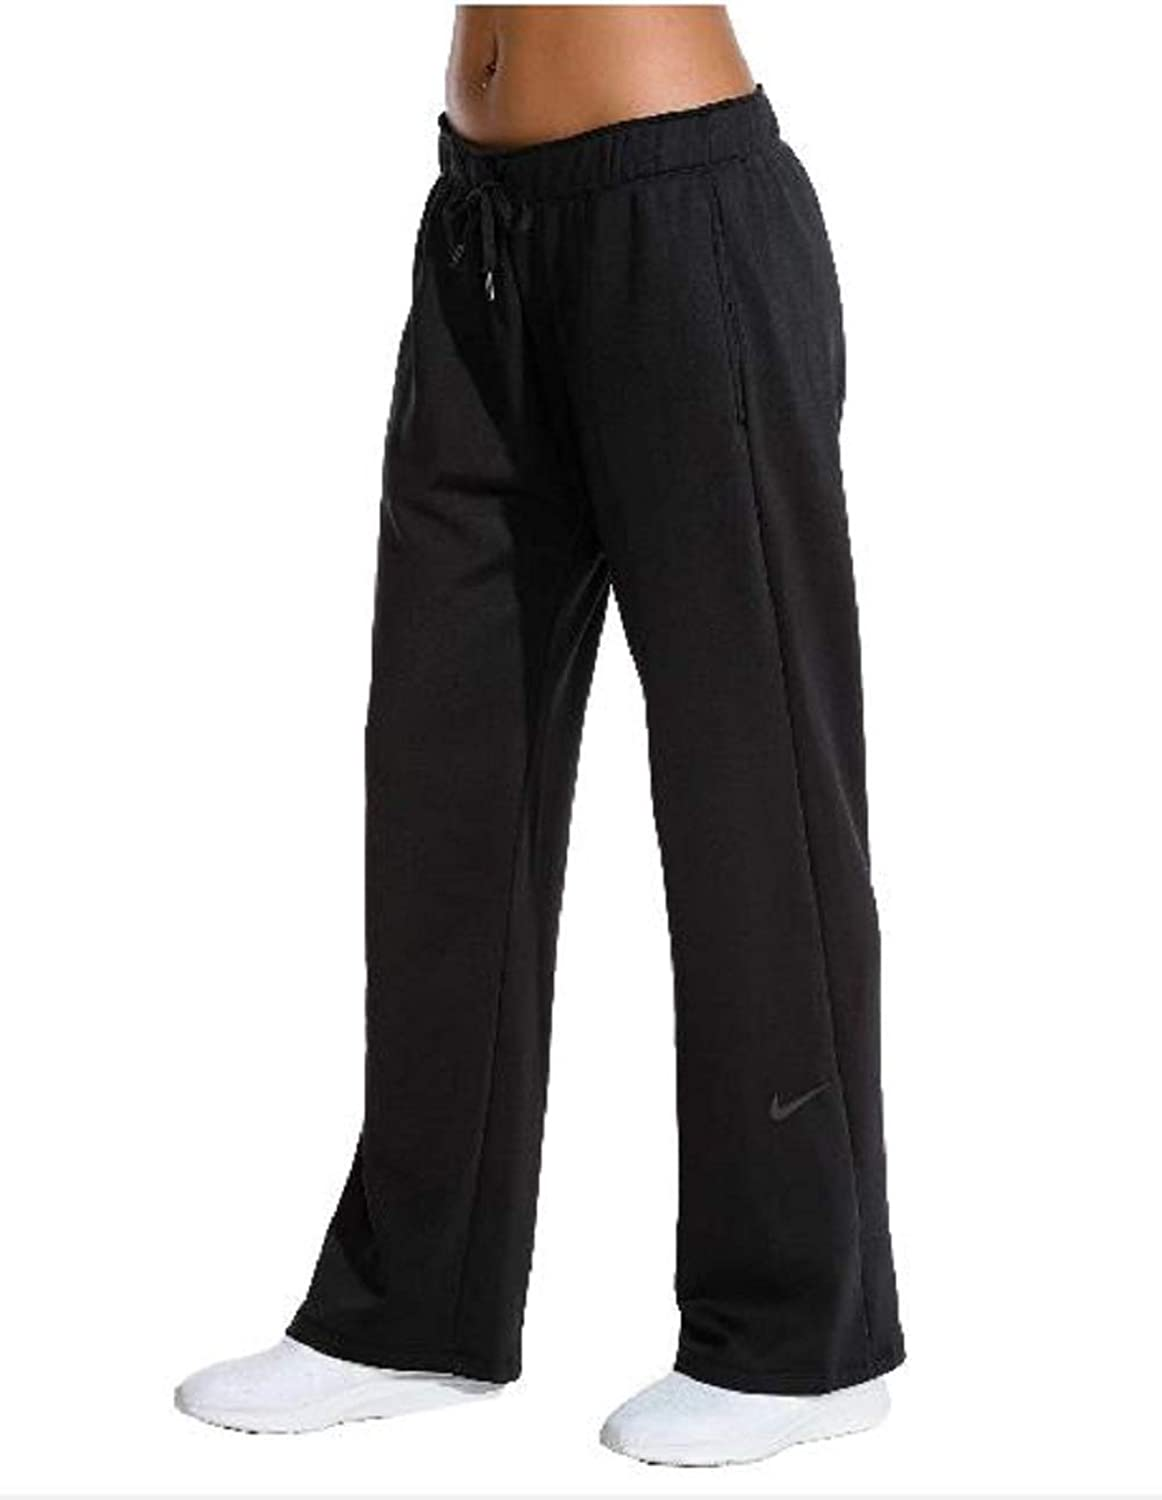 W NK THRMA Pant All TIME damen& 39;s Fleece Training Pants